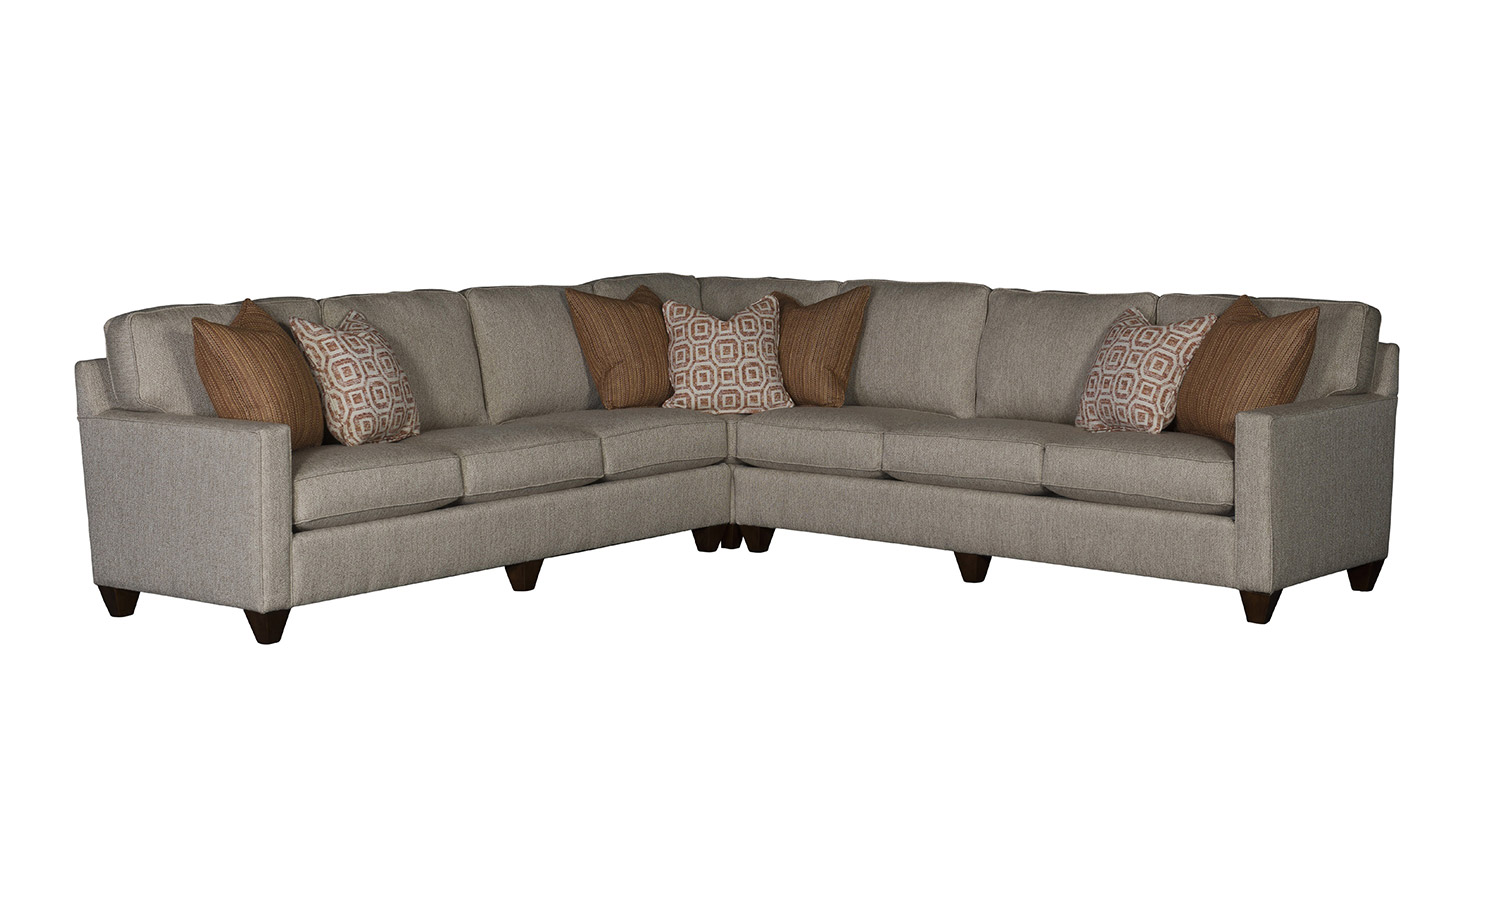 Chelsea Home Sutton Sectional Sofa   Grey